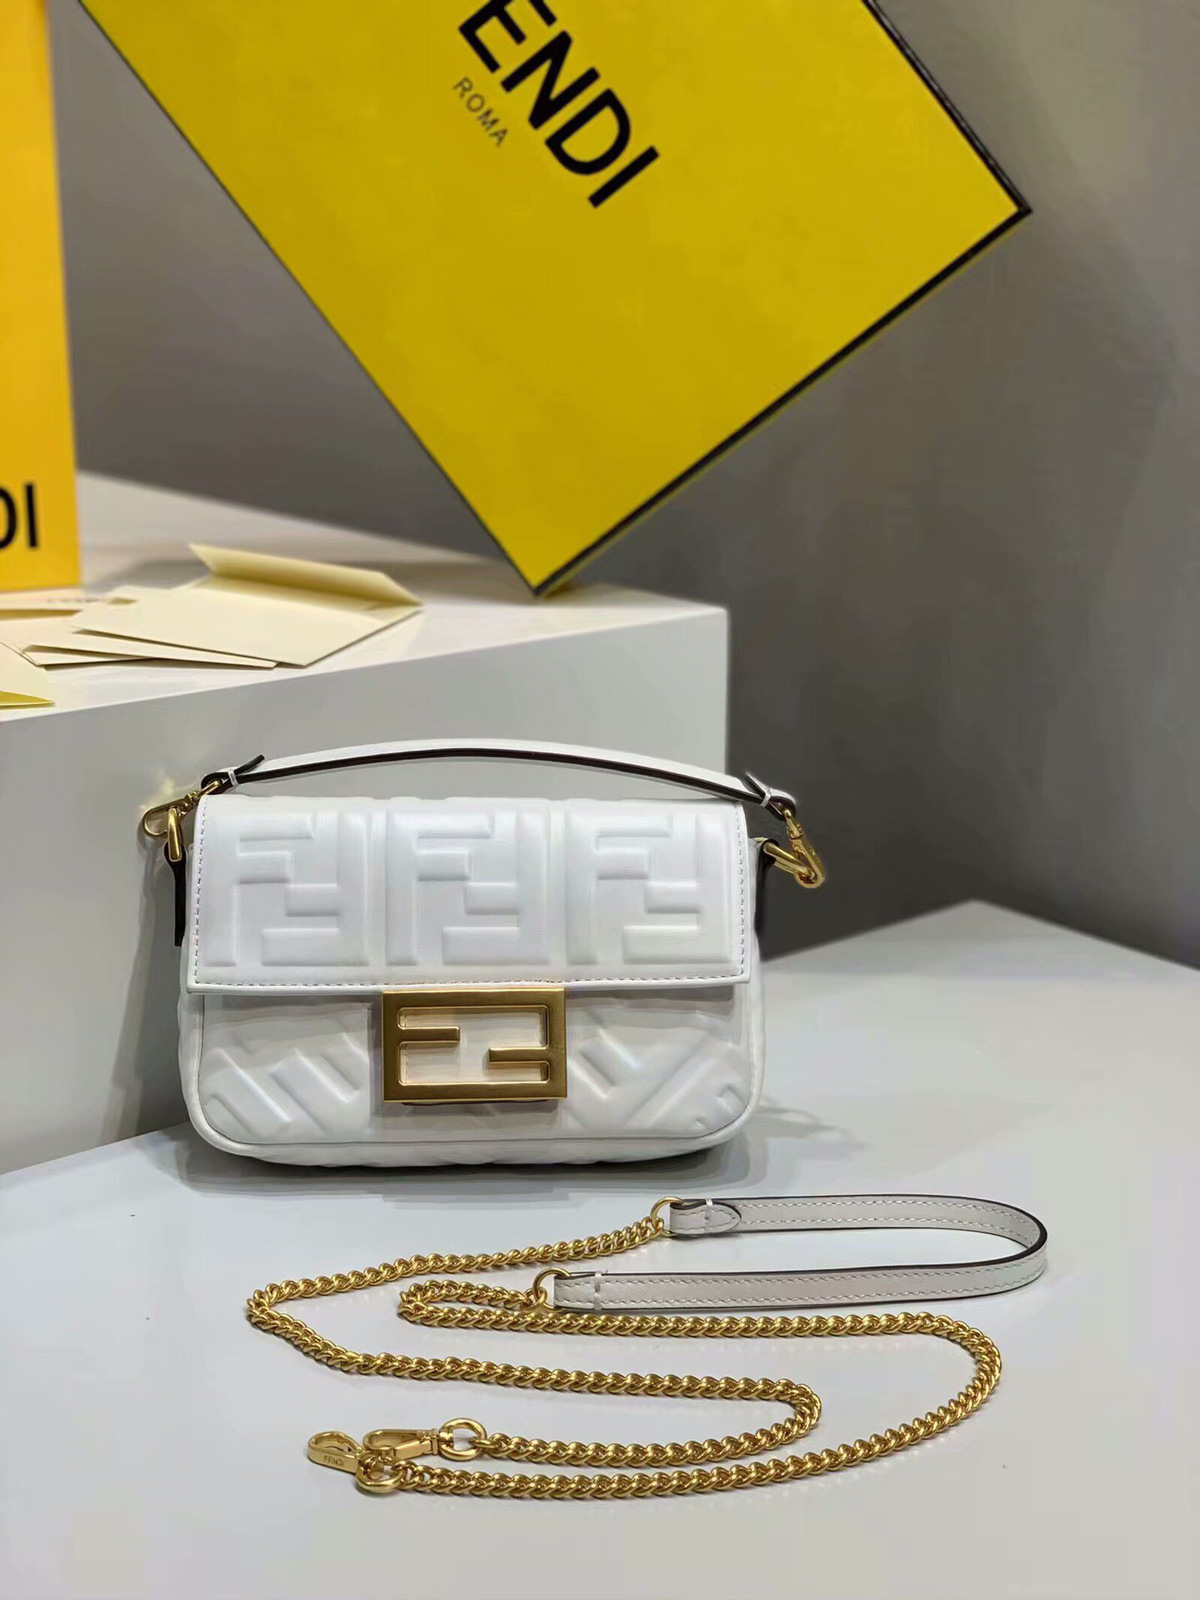 2019 Fendi bag BAGUETTE white - 5